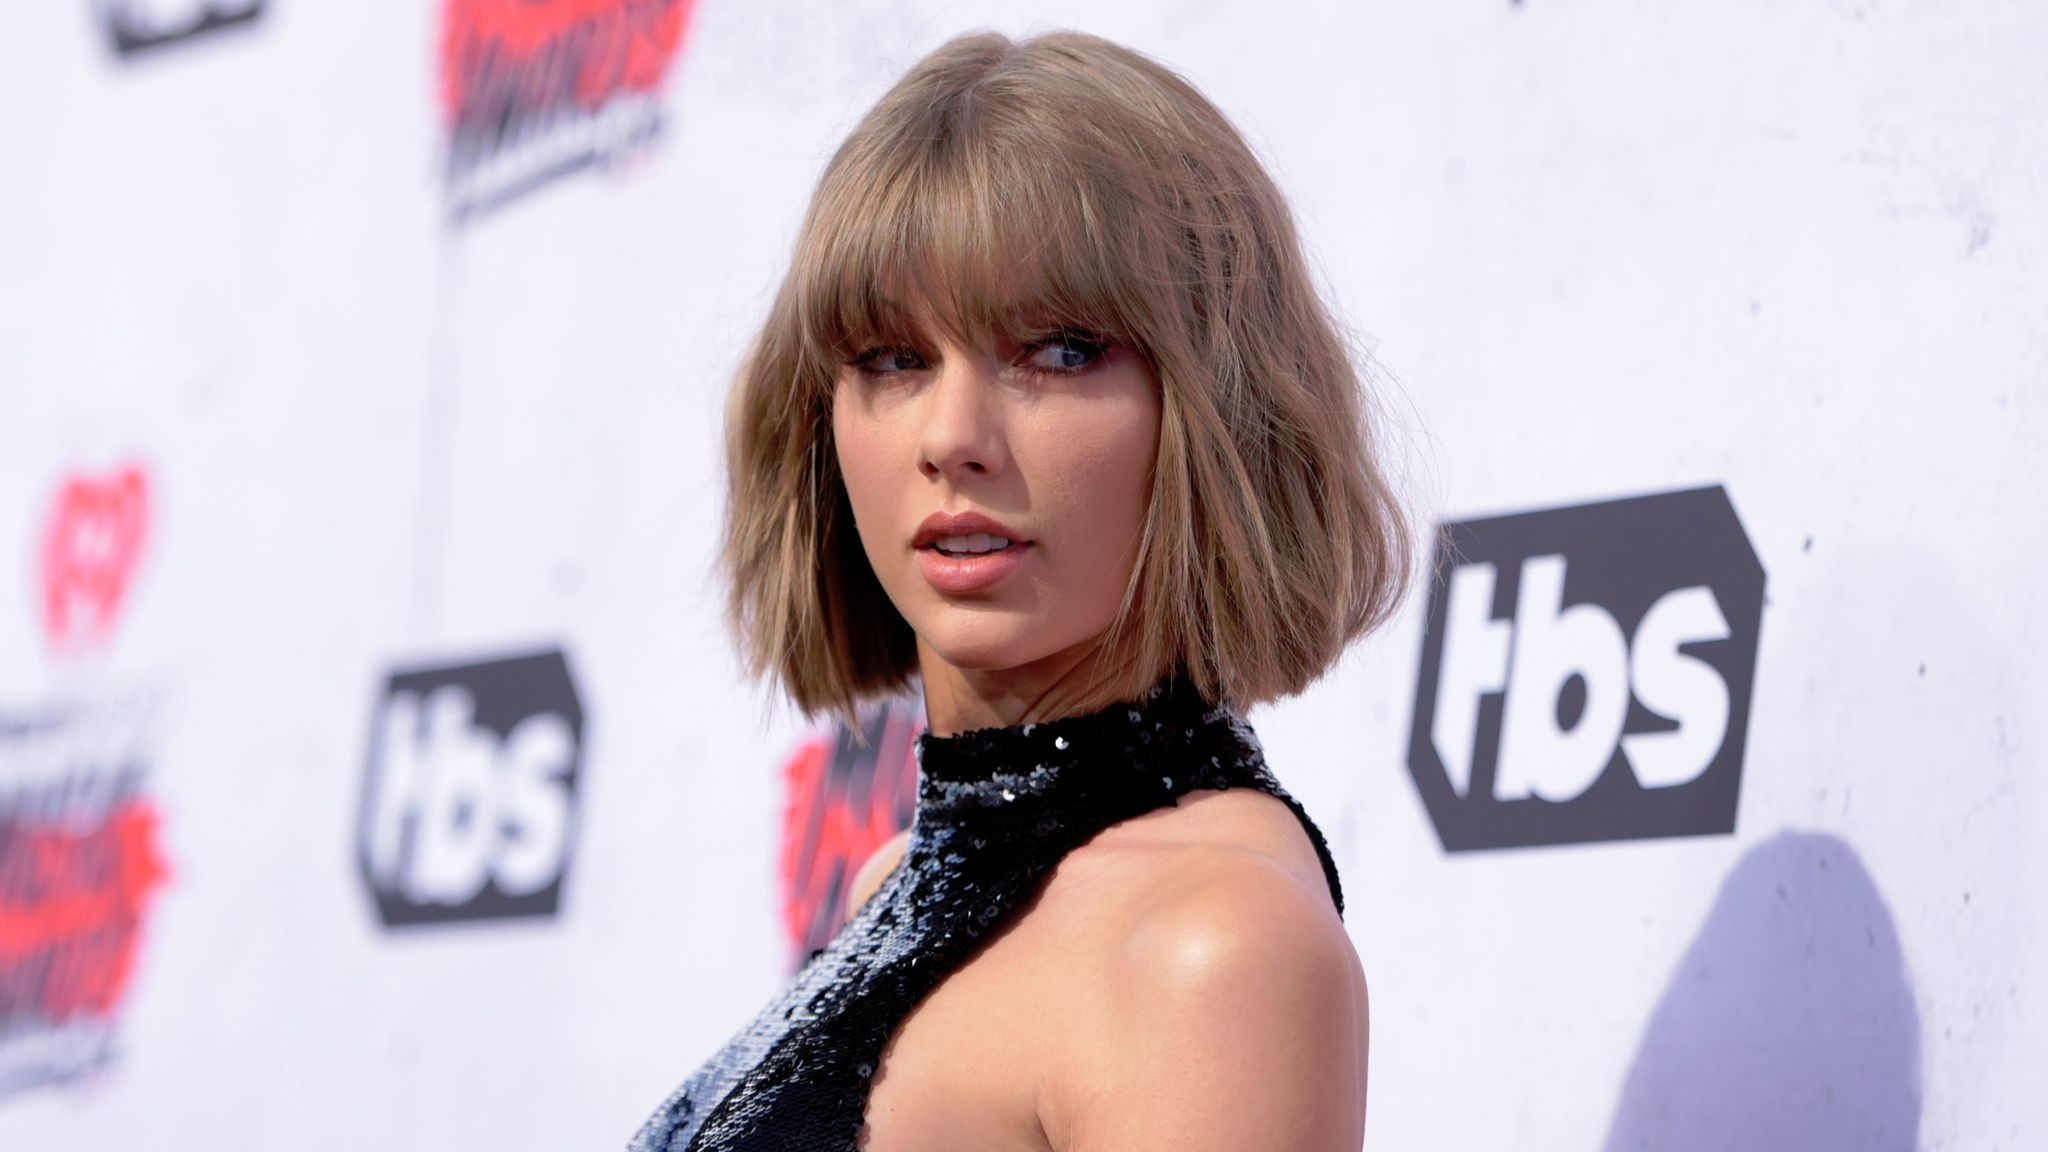 Taylor Swift groping trial hangs on a few voices and a photo